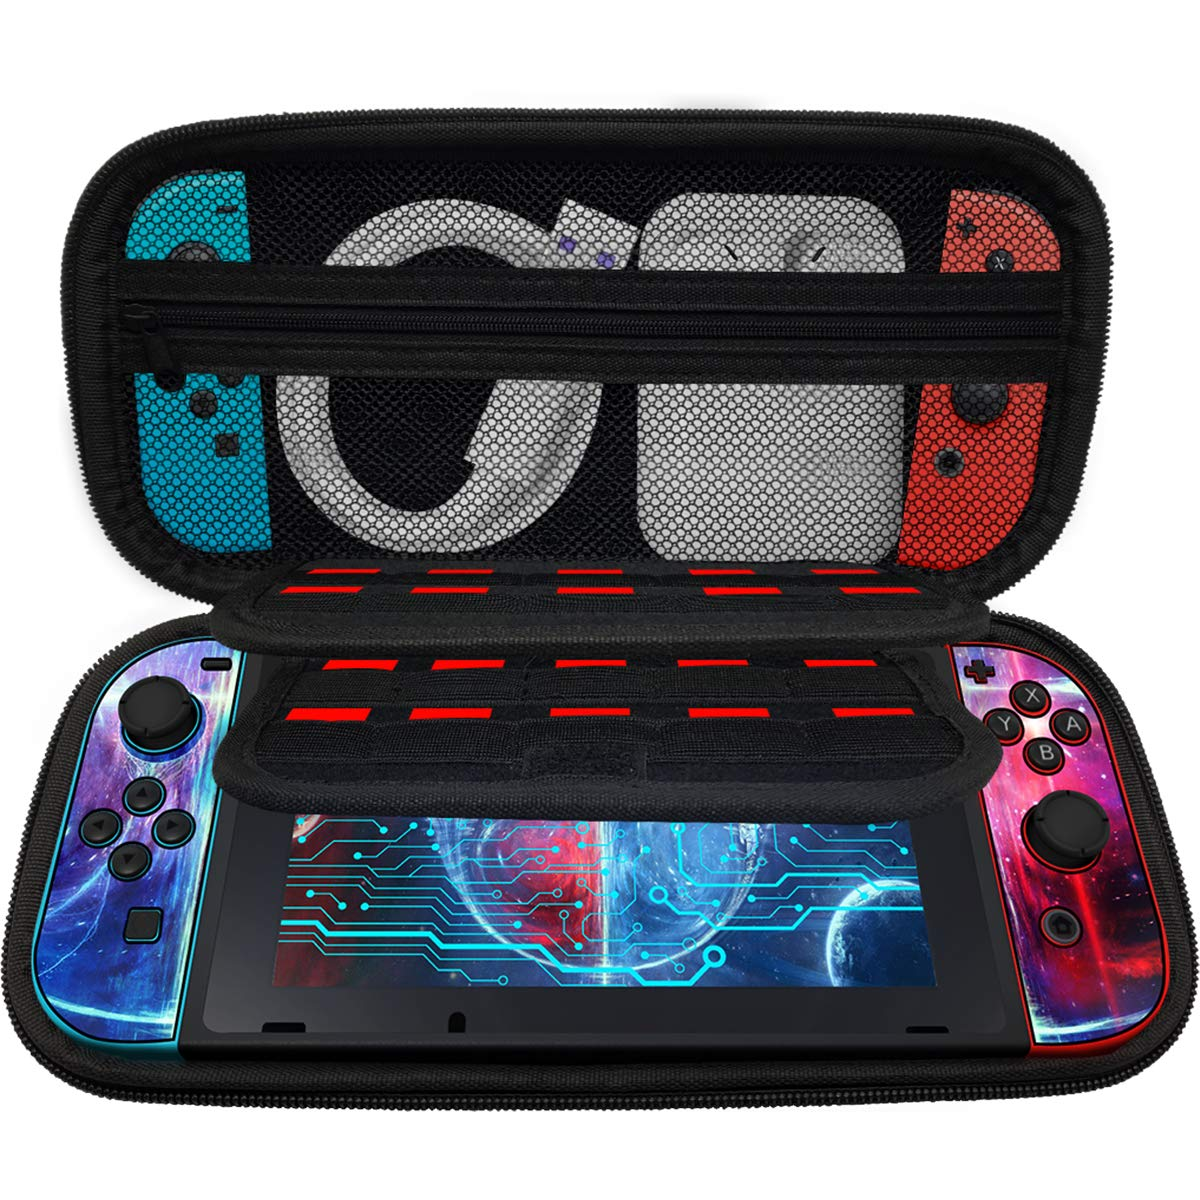 SHiQiMA Switch Case for Nintendo Switch with 20 Game Card Pockets and Large Accessories Hard Switch Carrying Case Cute Pouch for Joy-con & Game Cards Travel Case Bag Console & Accessories(Black)